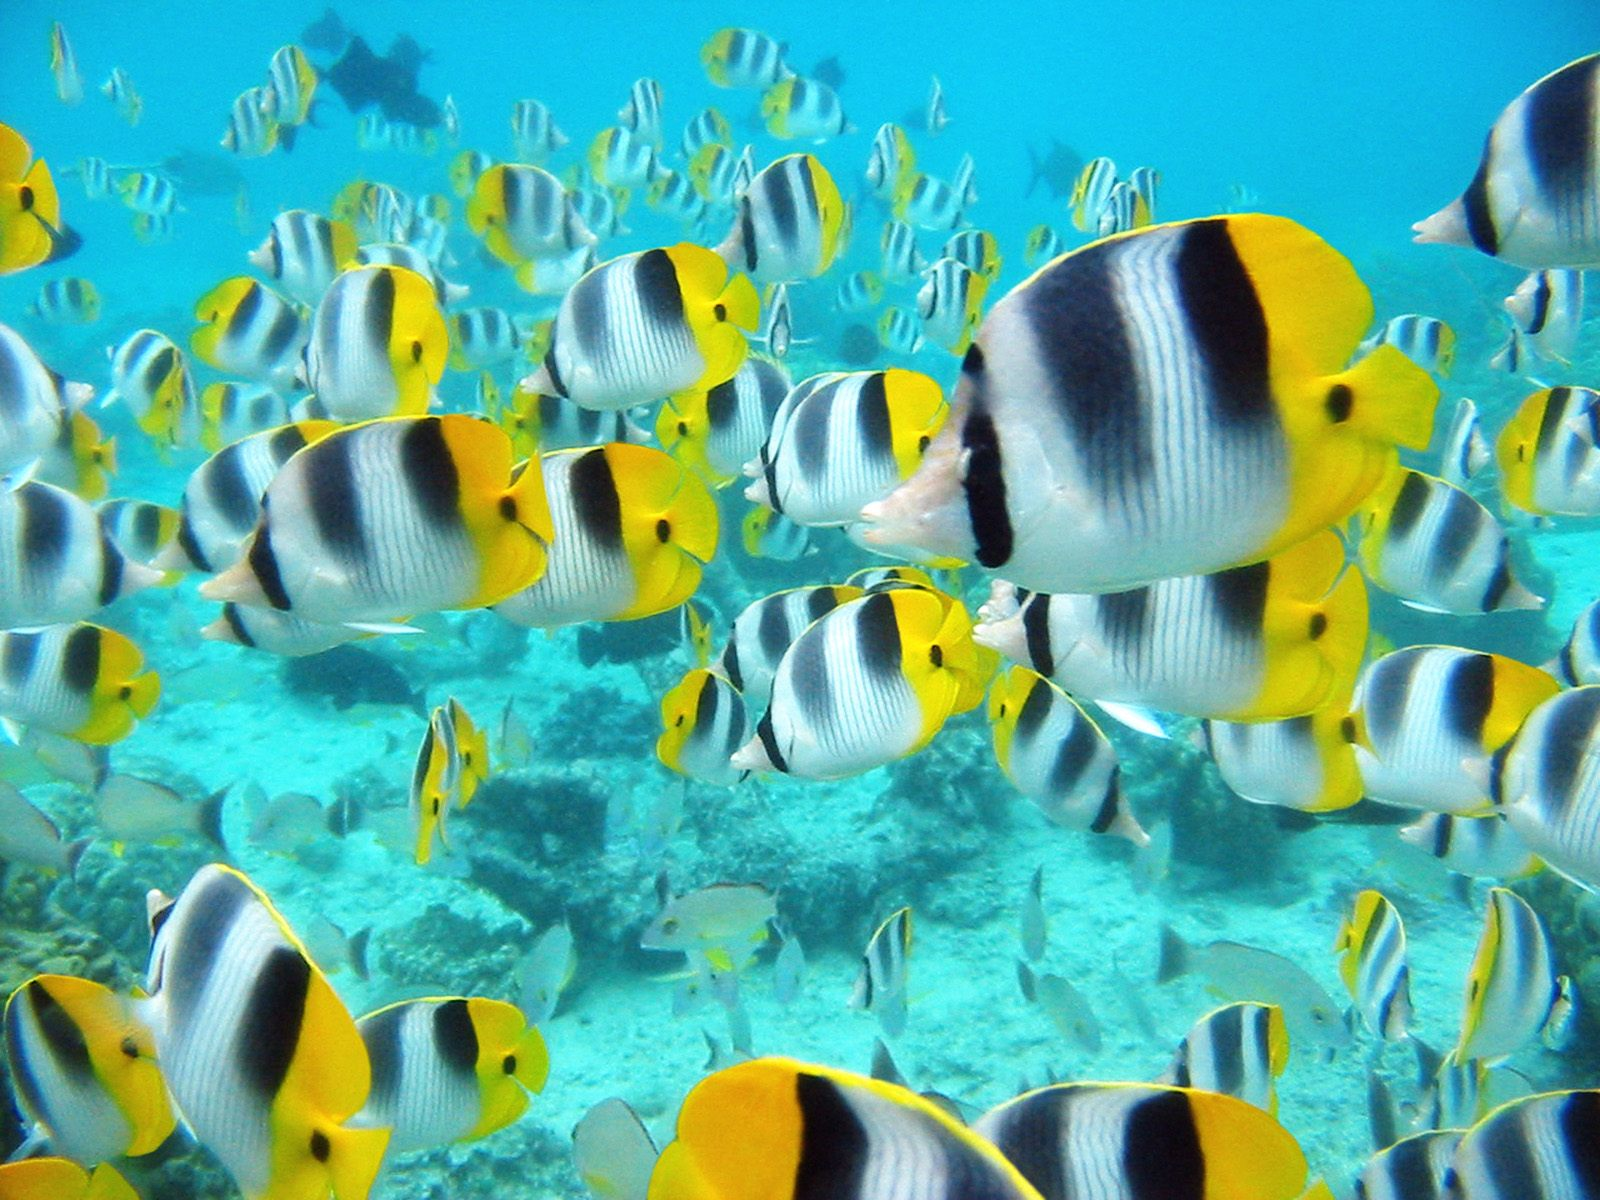 Fish wallpapers fish pictures fish photos tropical fish for Tropical fish images